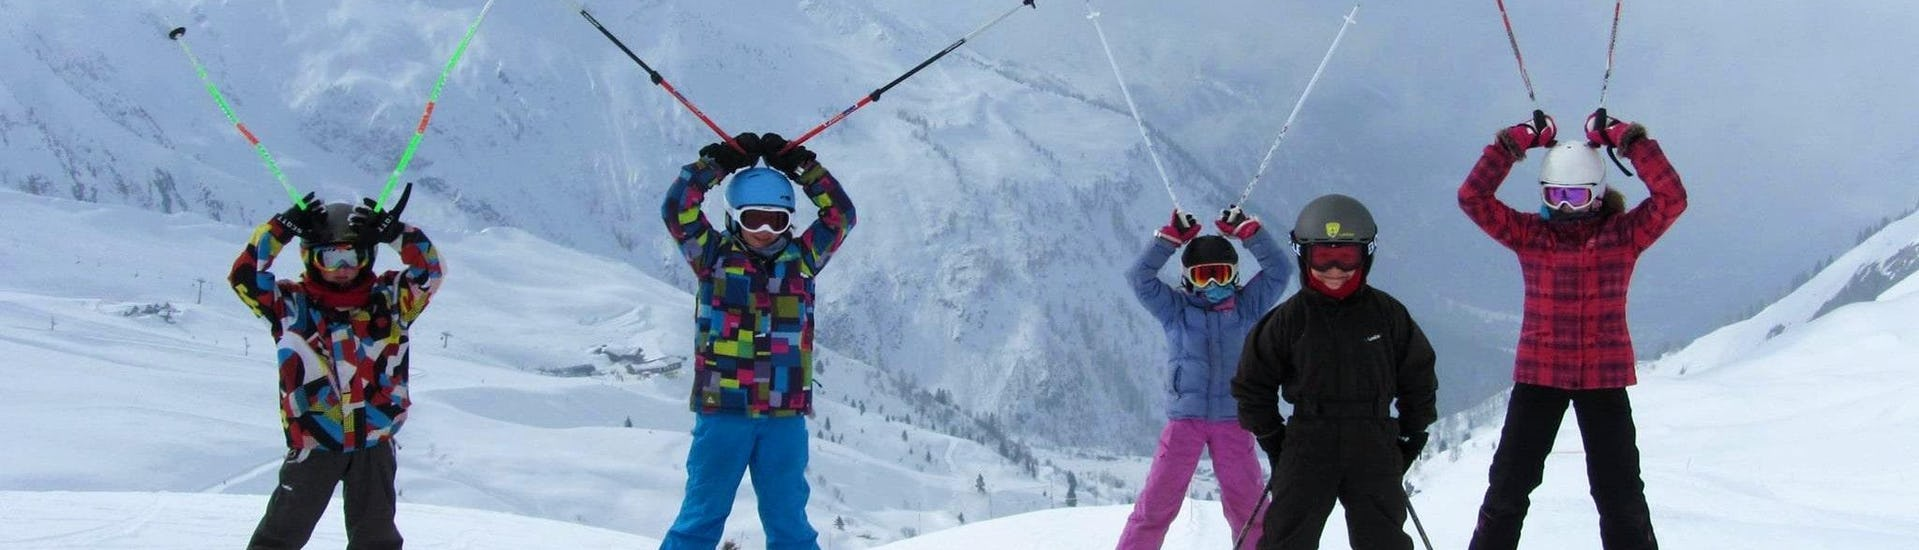 Kids are standing at the top of the mountain with their ski poles up in the air during their Kids Ski Lessons (5-12 years) - Beginner with the ski school ESF Chamonix.